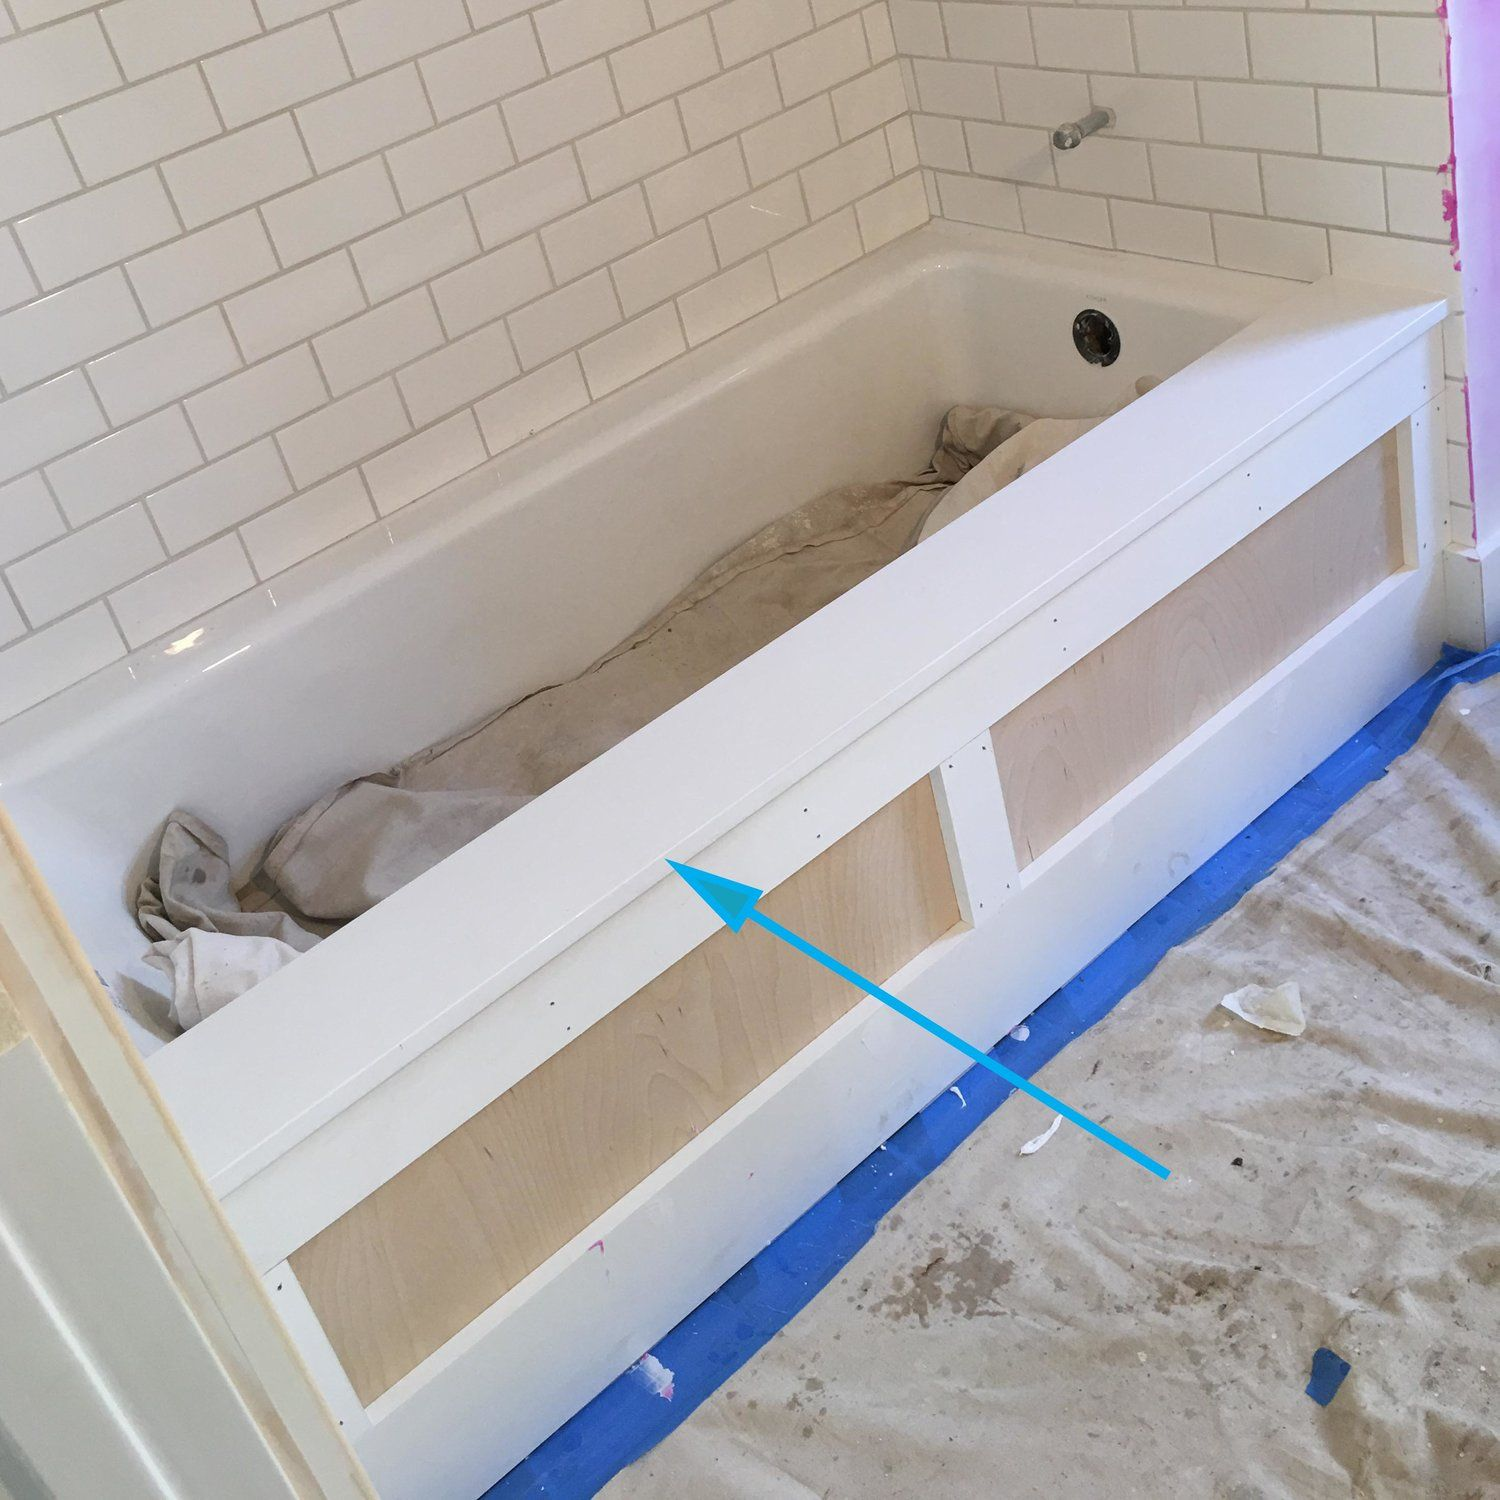 Remodeling Bathroom While Pregnant our inexpensive tub trick | bath tubs, tubs and lancing f.c.